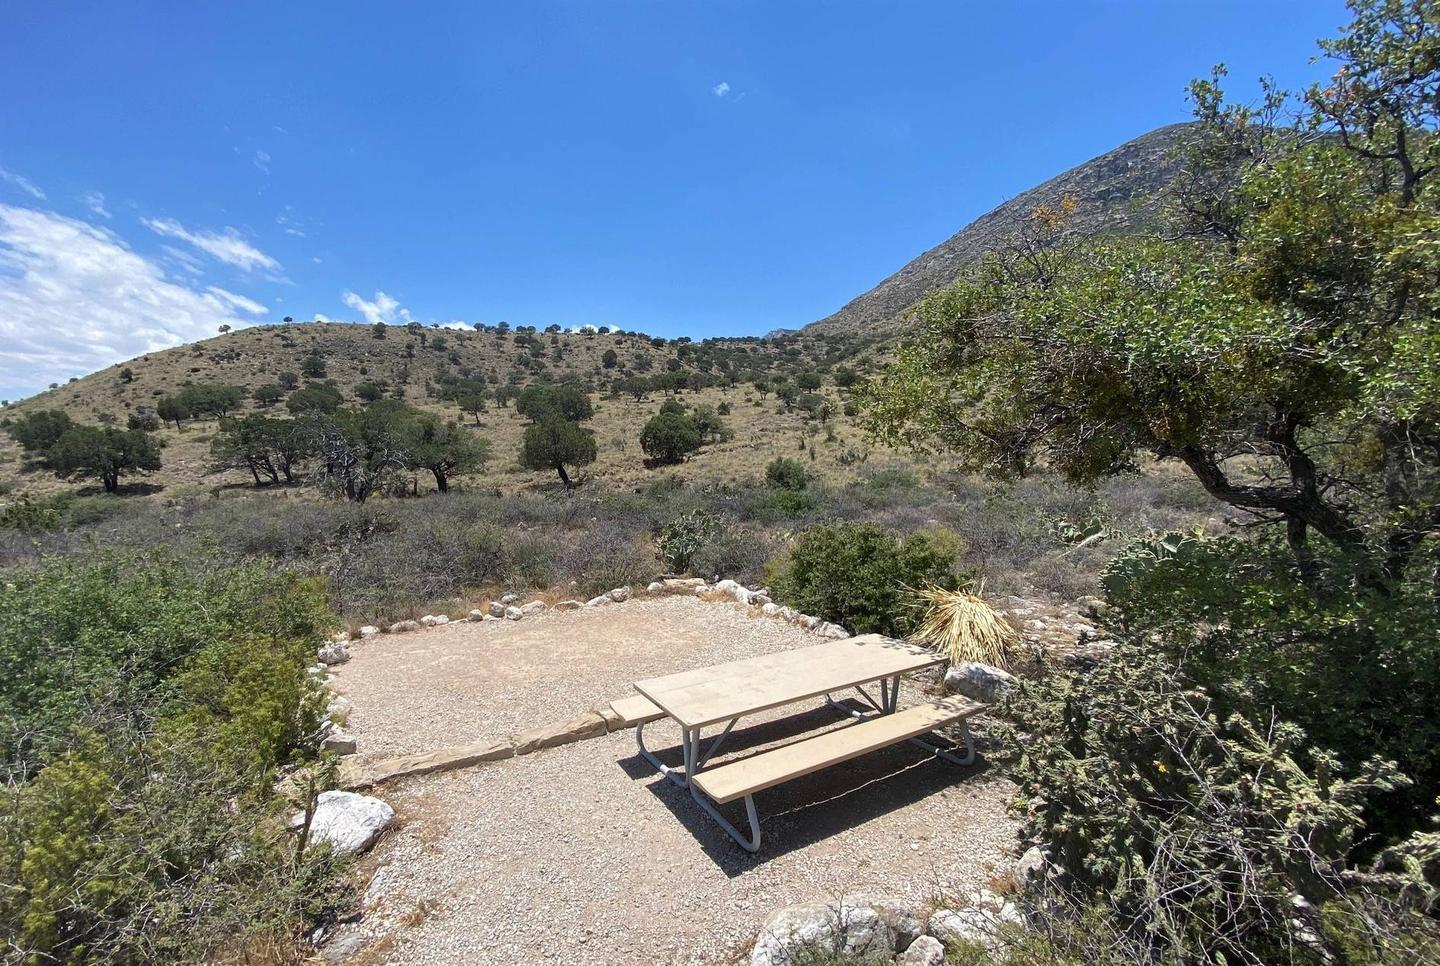 Elevated view of tent campsite number 7 with mountains in background.  Desert vegetation surrounds the site.Elevated view of tent campsite number 7 with mountains in background.